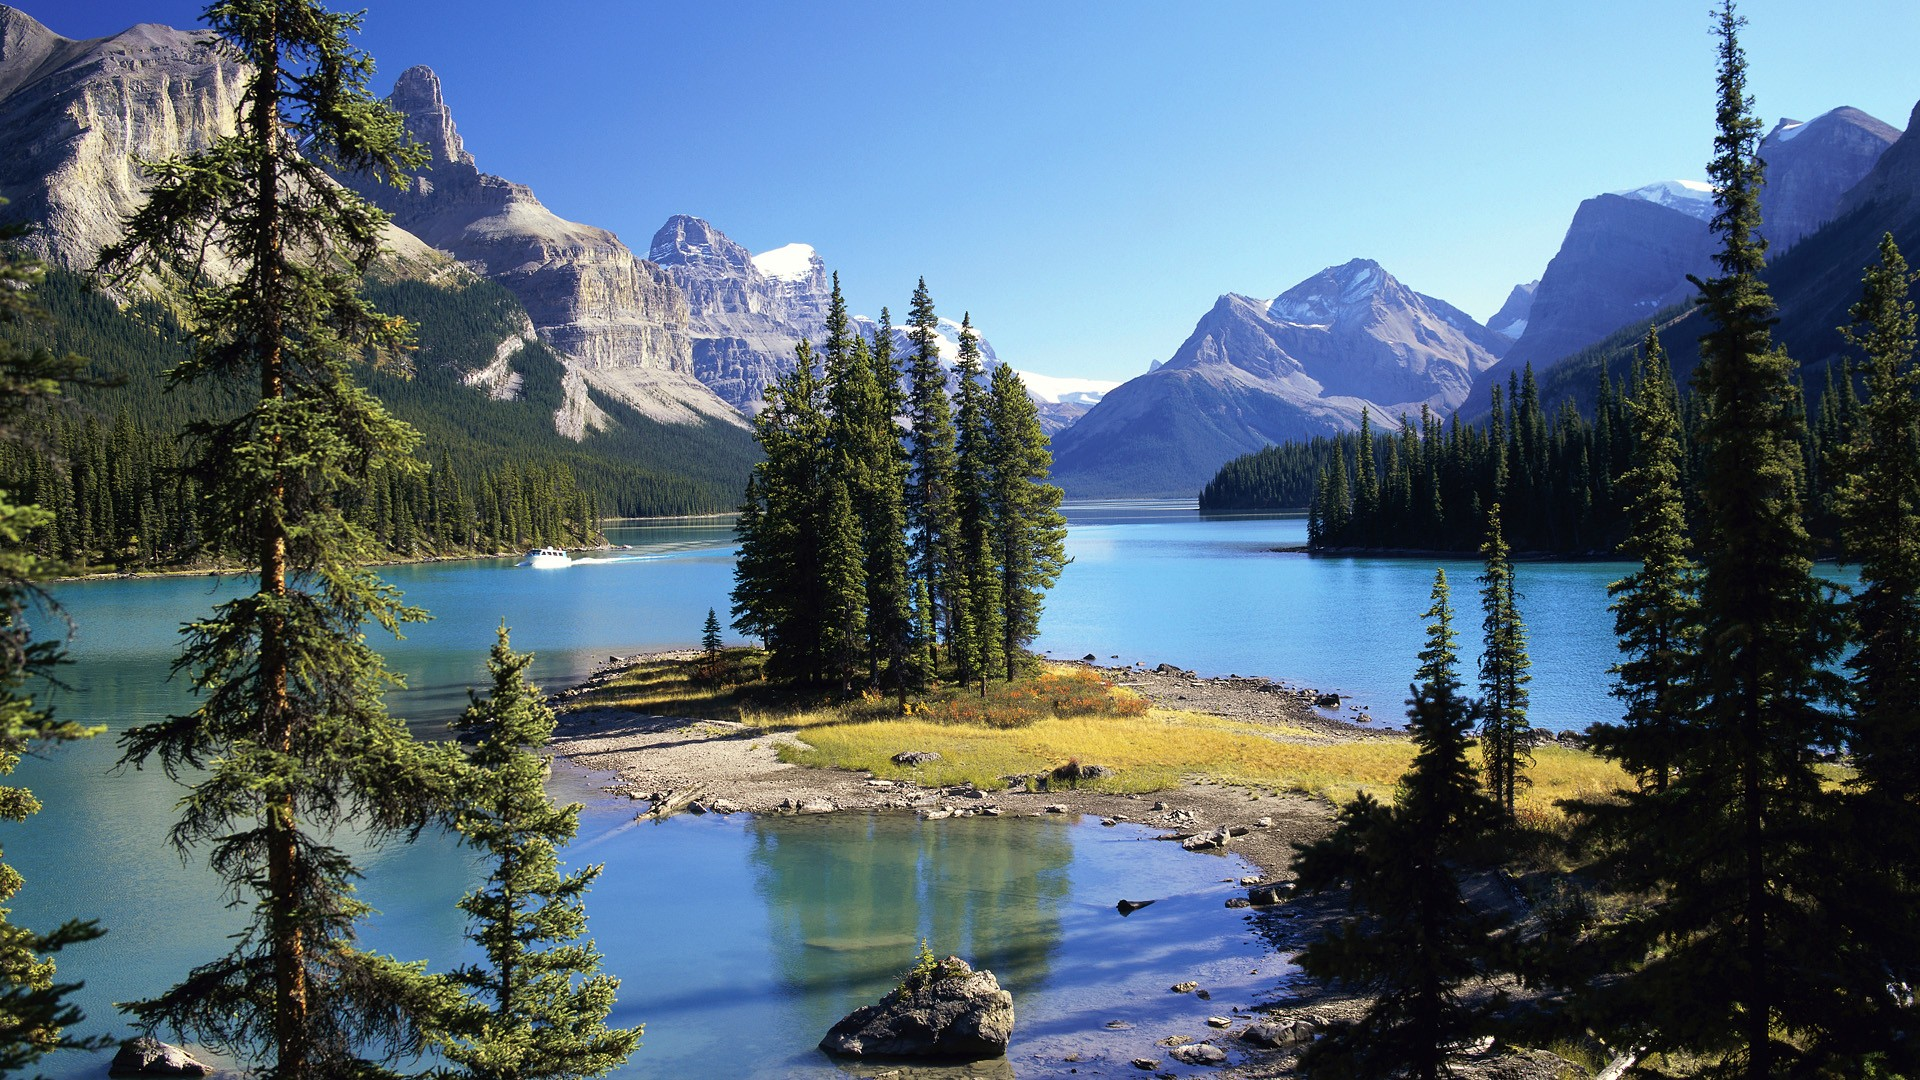 Maligne Lake, Jasper National Park, Spas of America